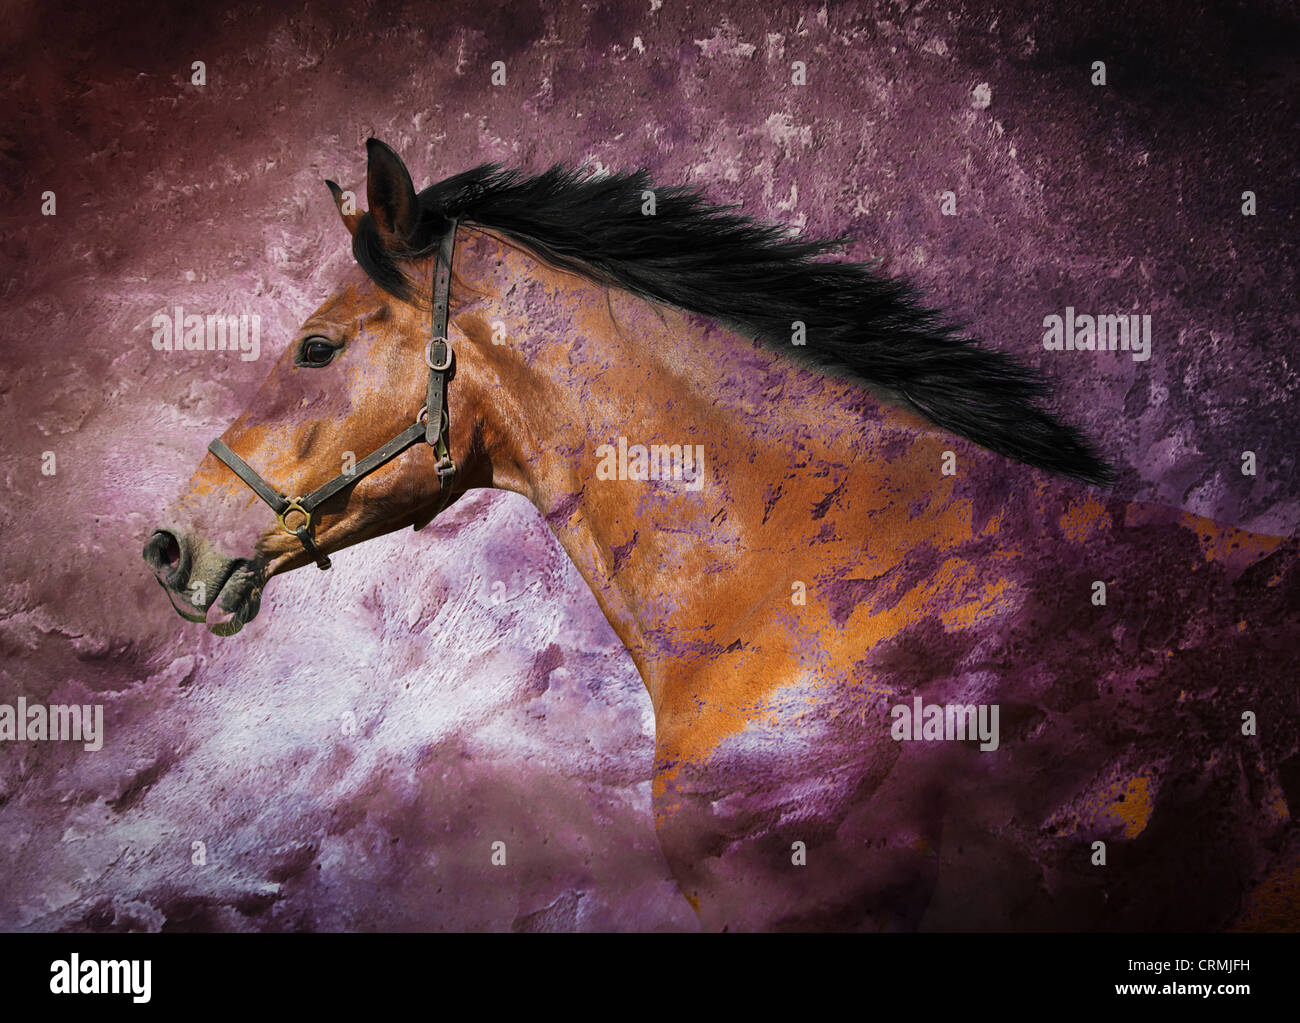 Portrait of a bay horse over purple texture - Stock Image